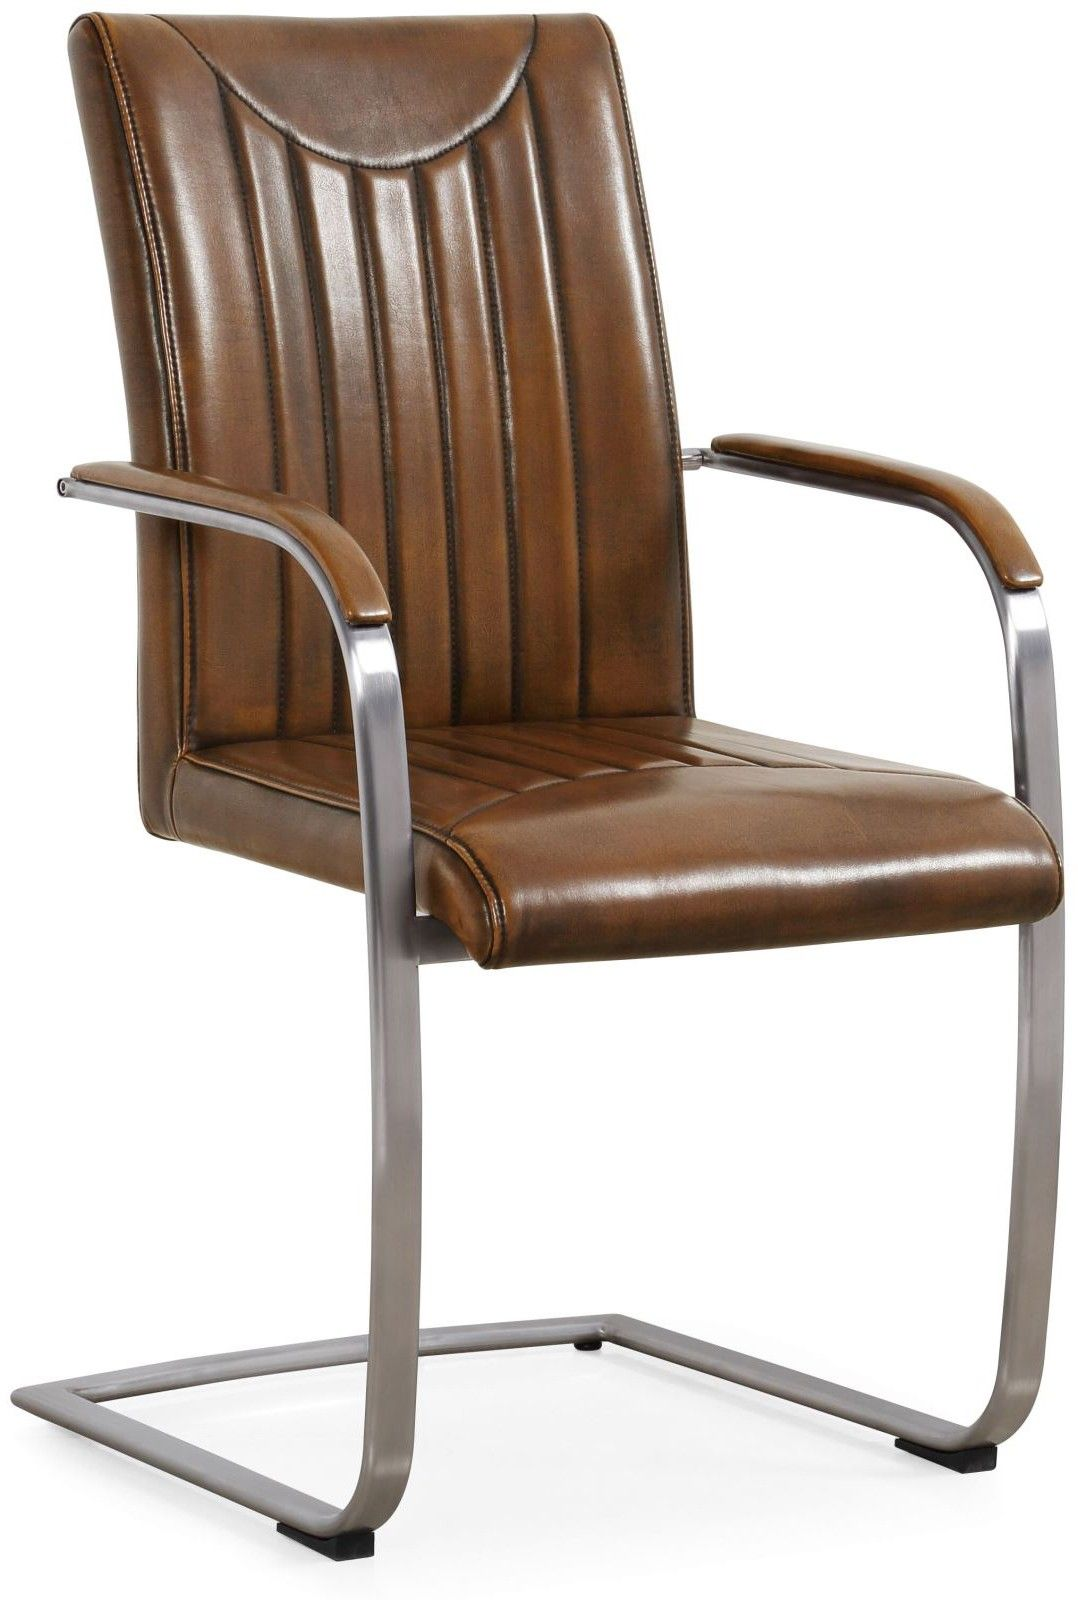 Purbeck Retro Dining Chair